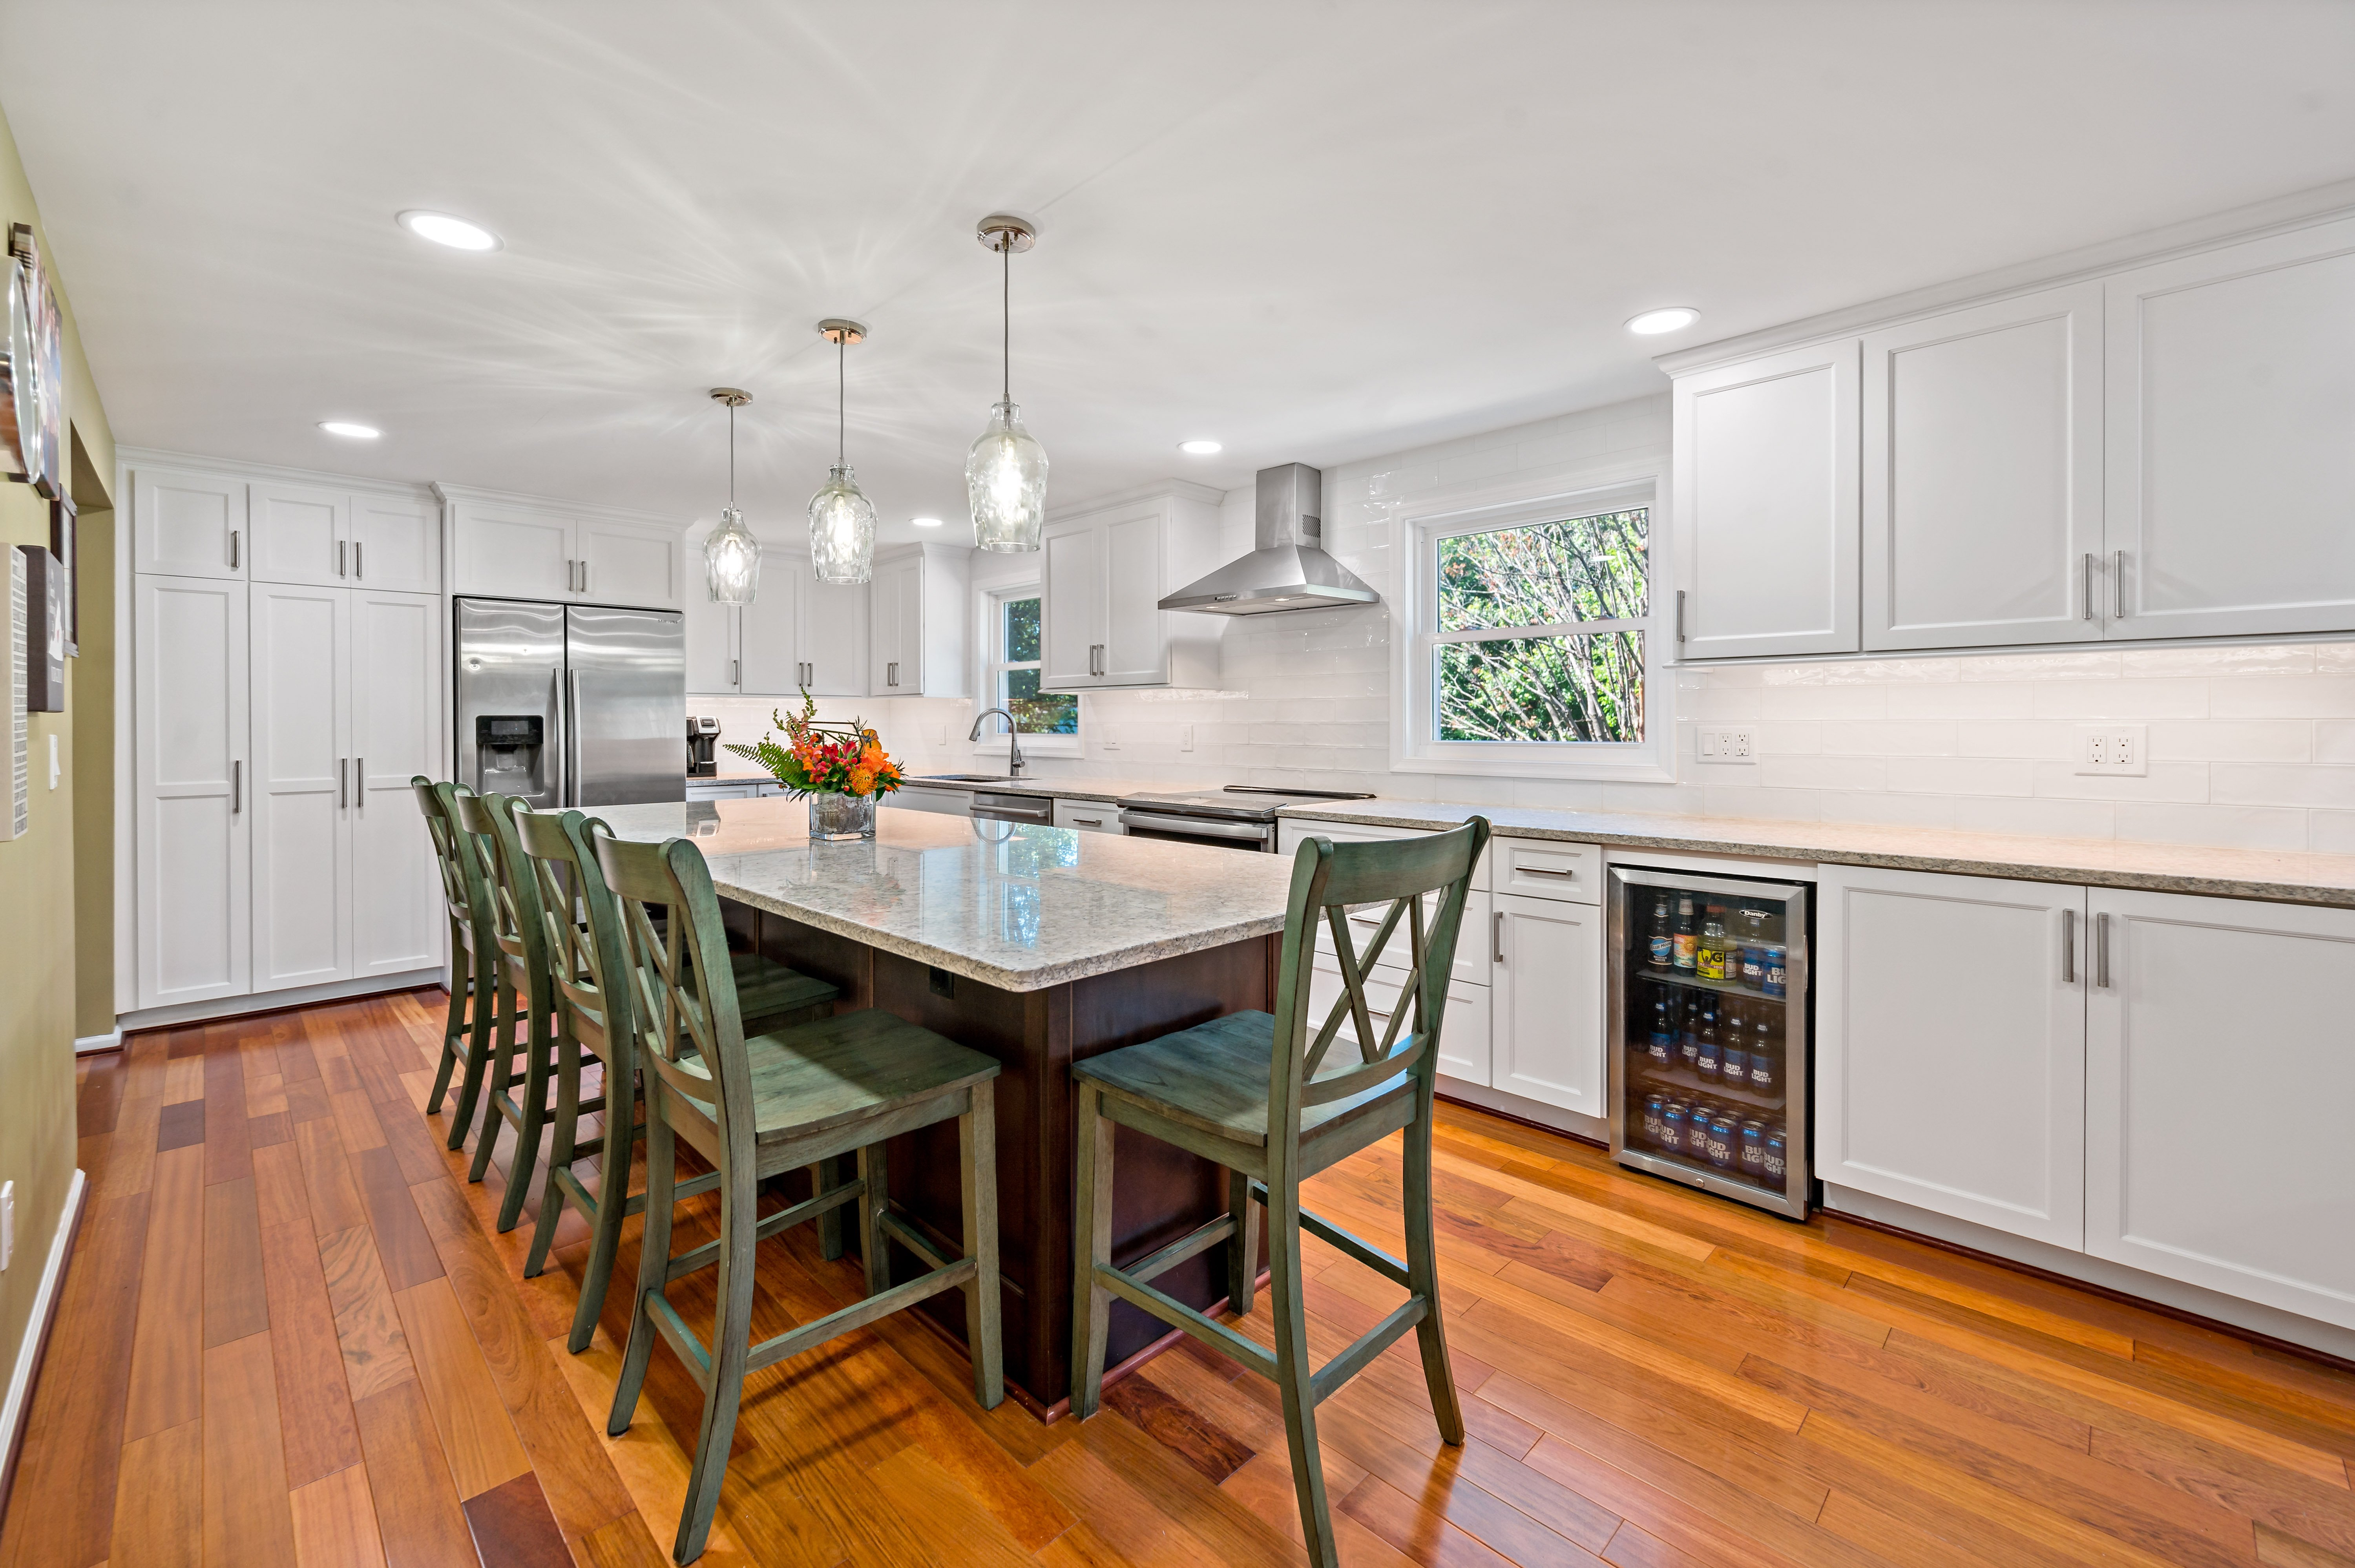 Better Use of Space Makes For A Beautiful Herndon Kitchen Remodel